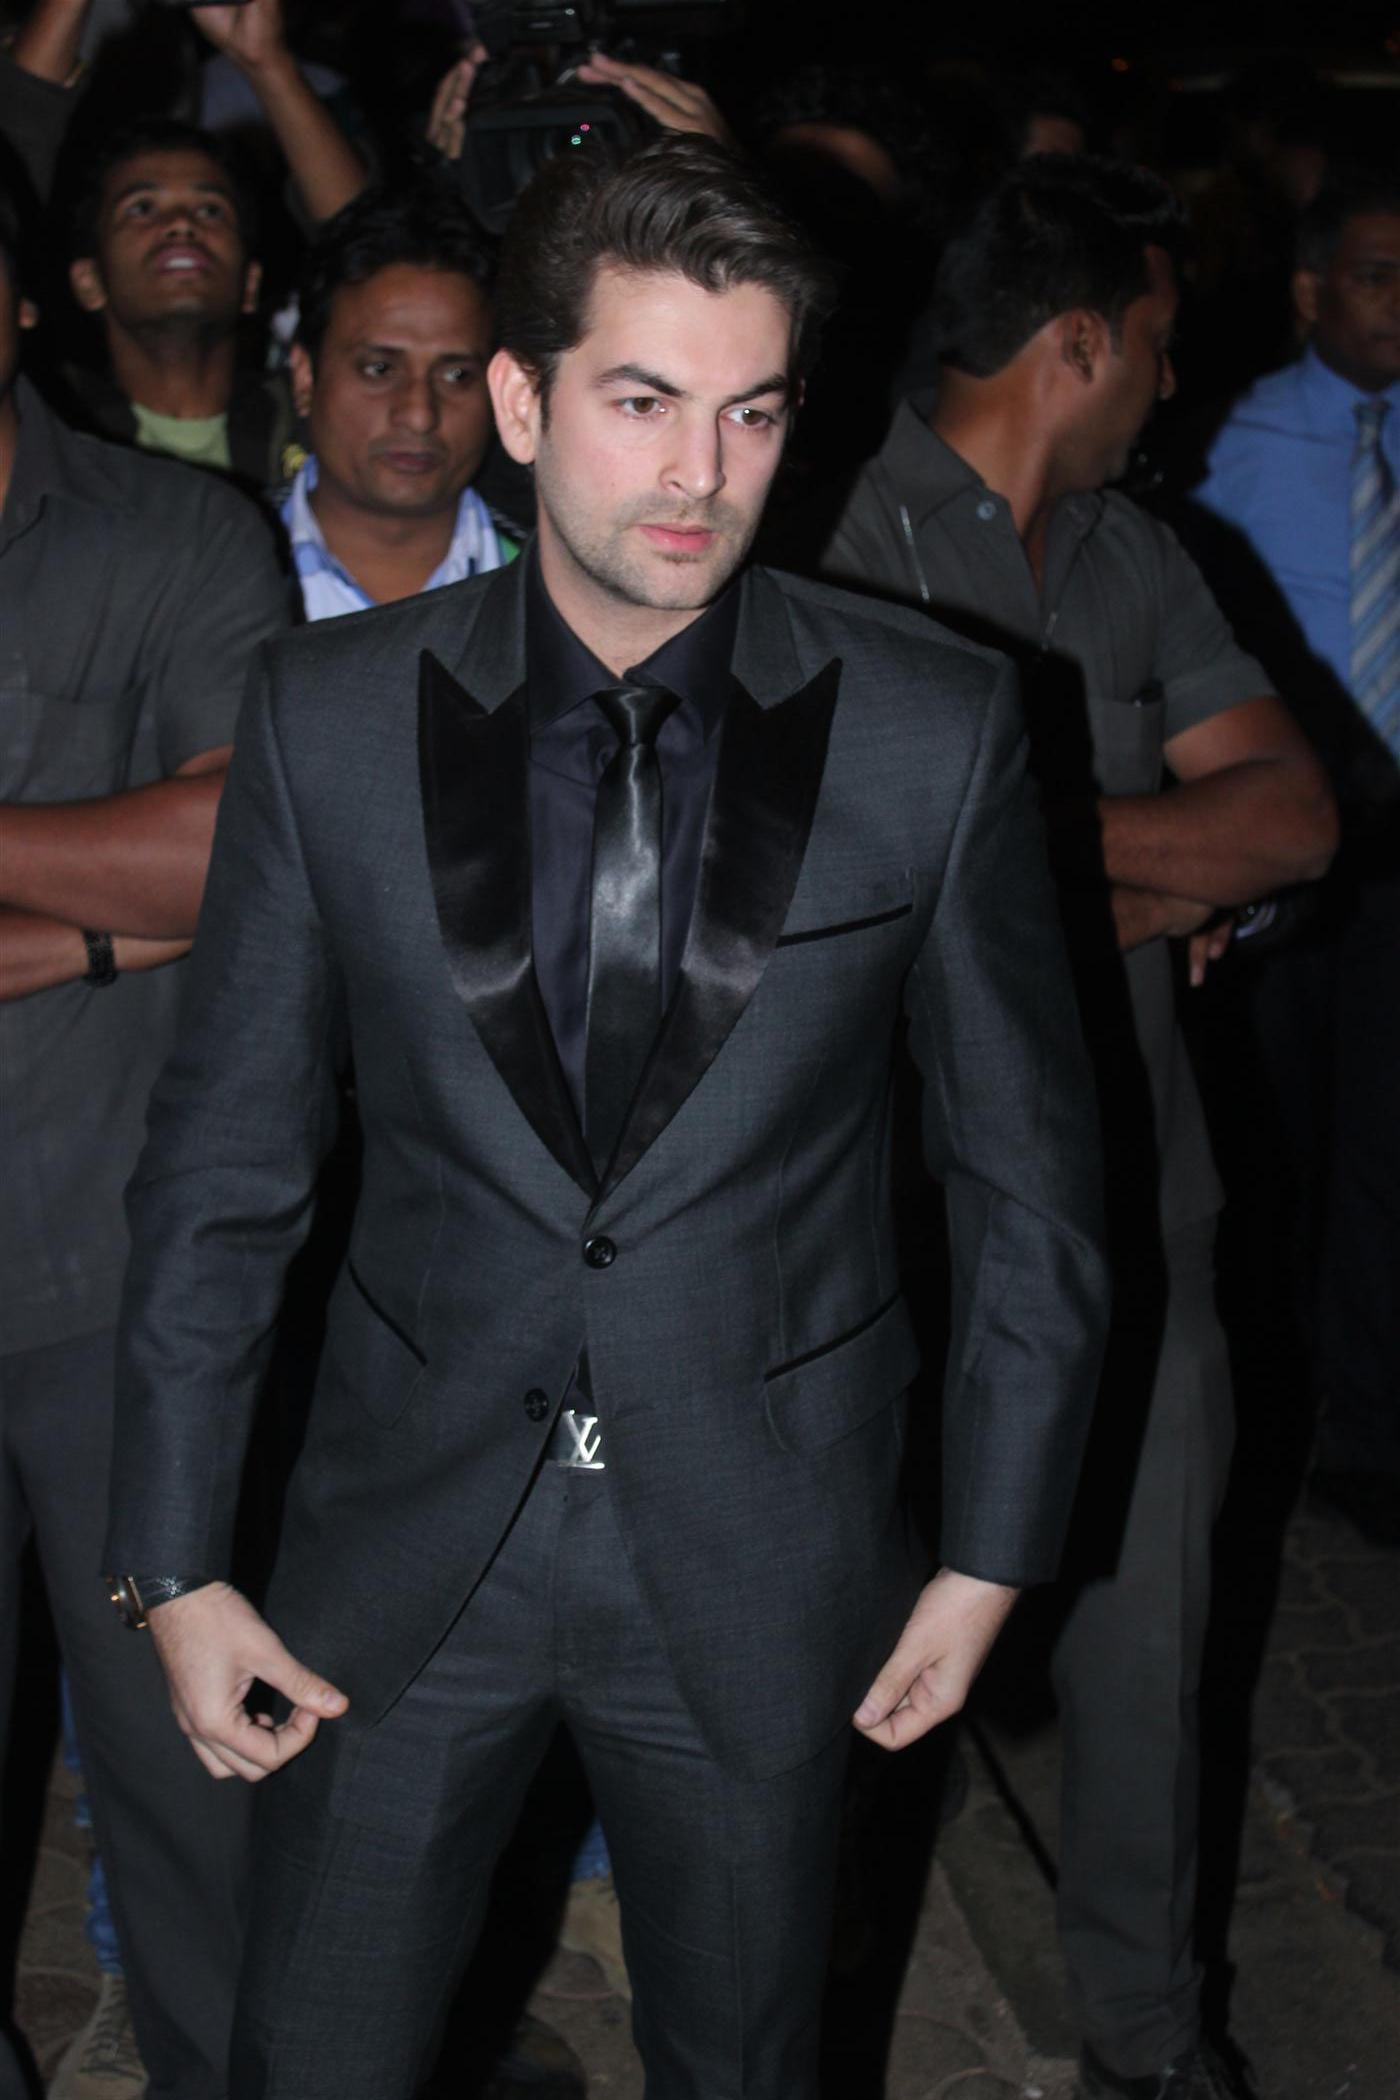 Nitin Wedding Neil Nitin Mukesh at Wedding